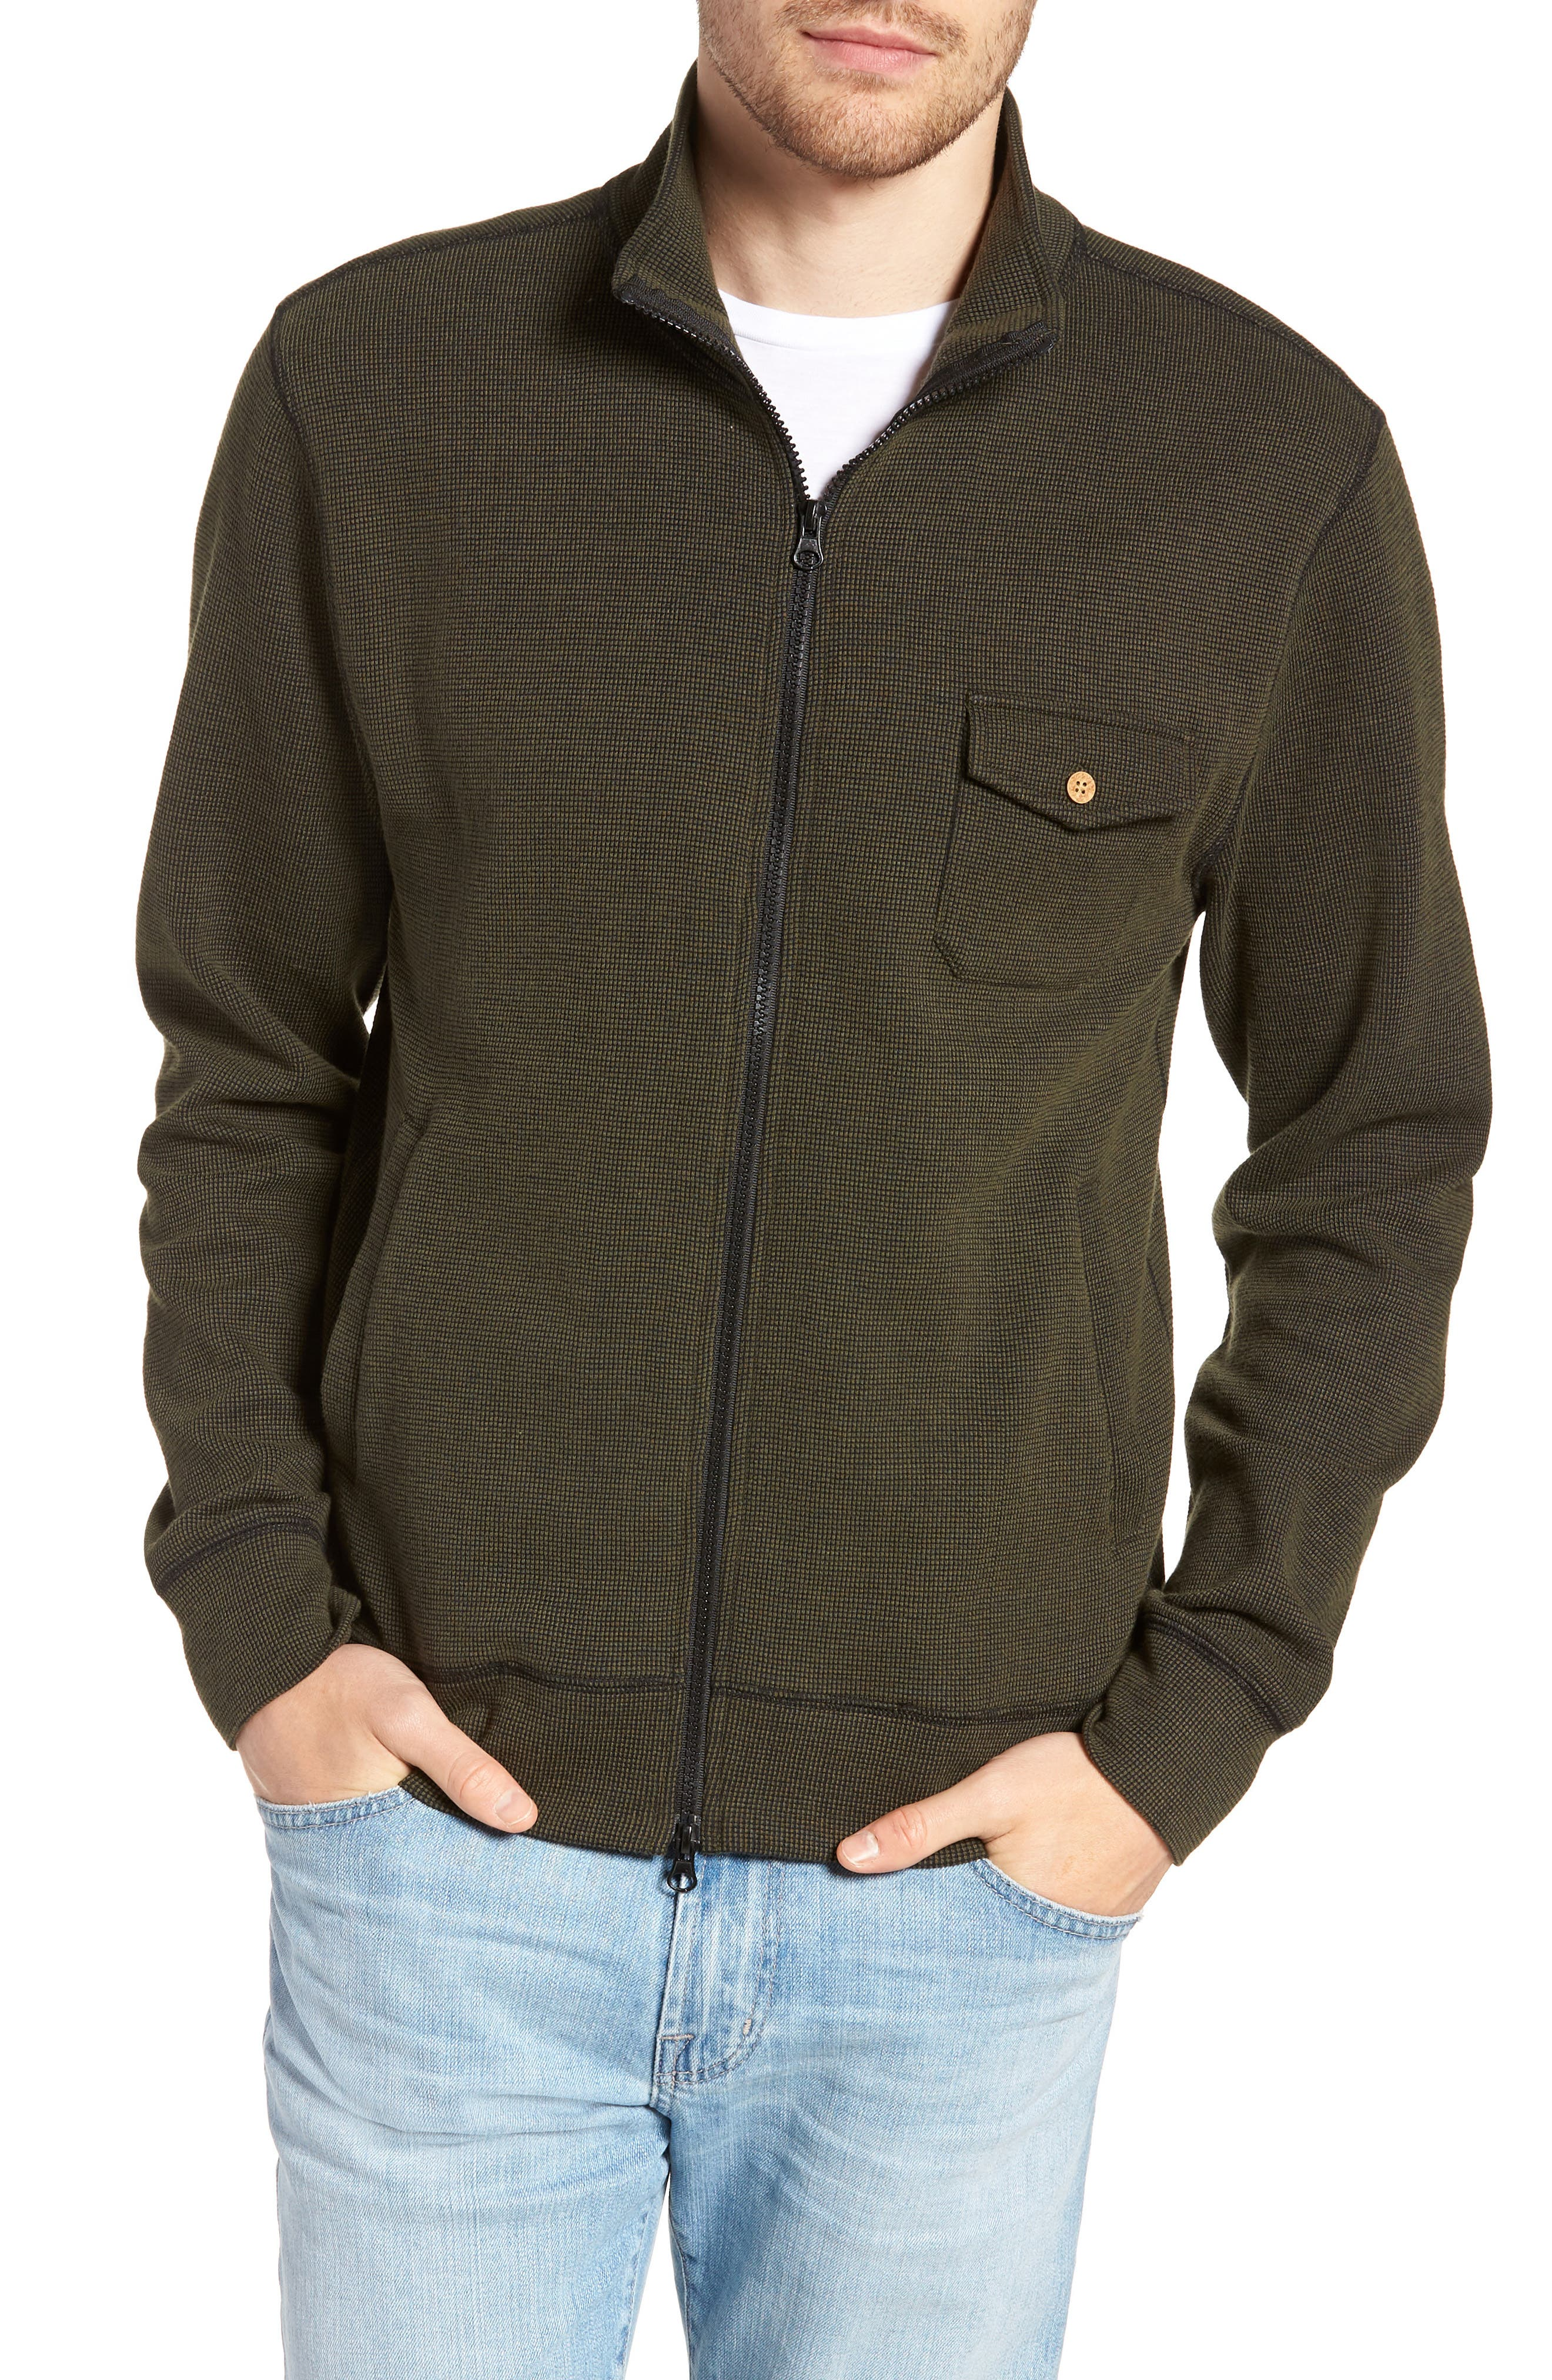 Regular Fit Cotton Cardigan,                             Main thumbnail 1, color,                             DARK OLIVE